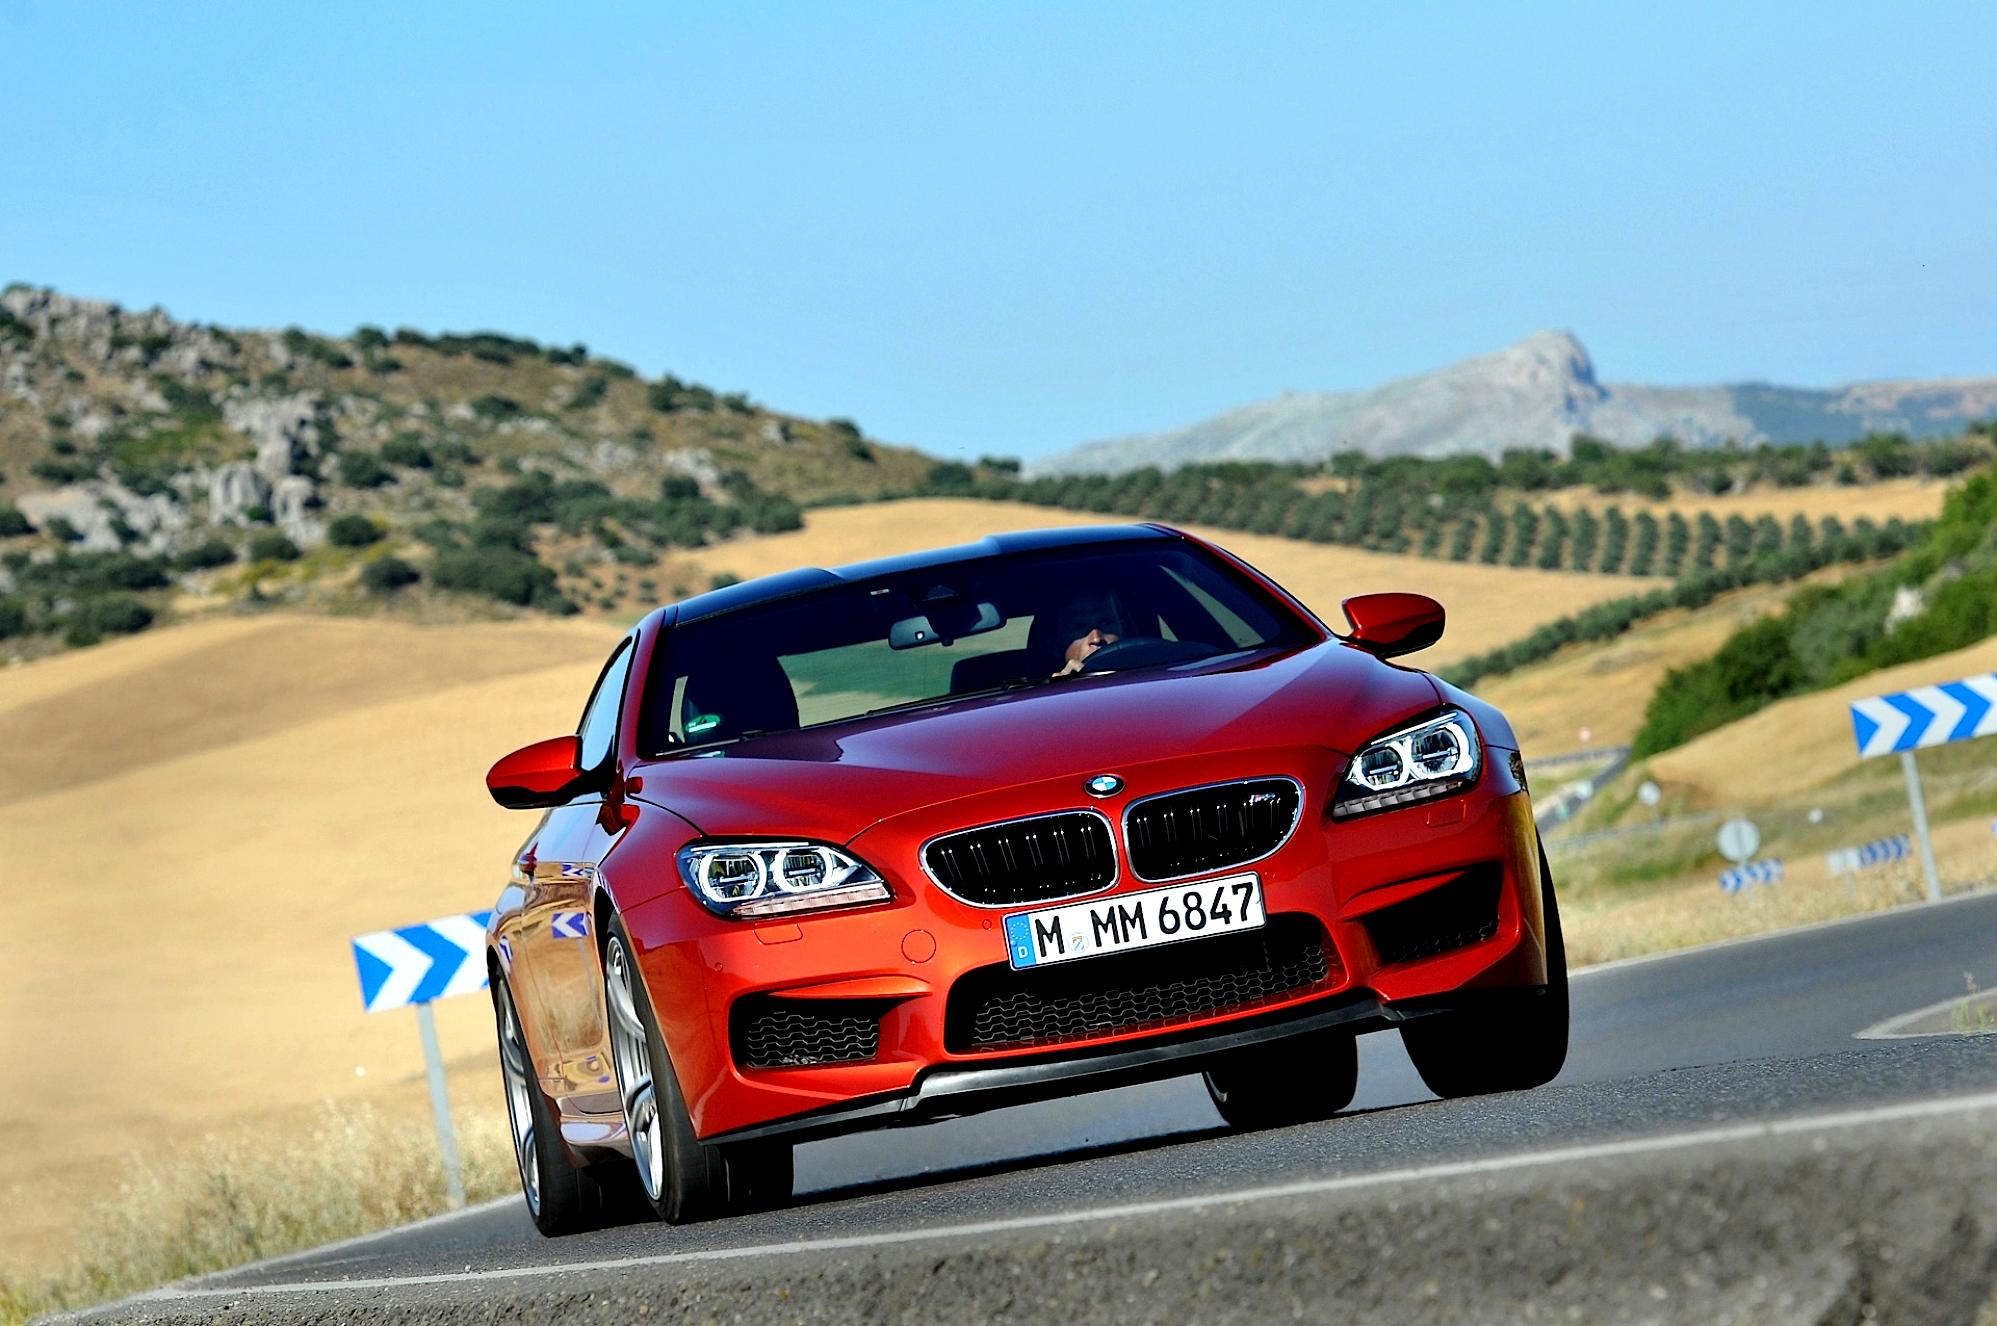 BMW M6 Coupe F13 2012 #71